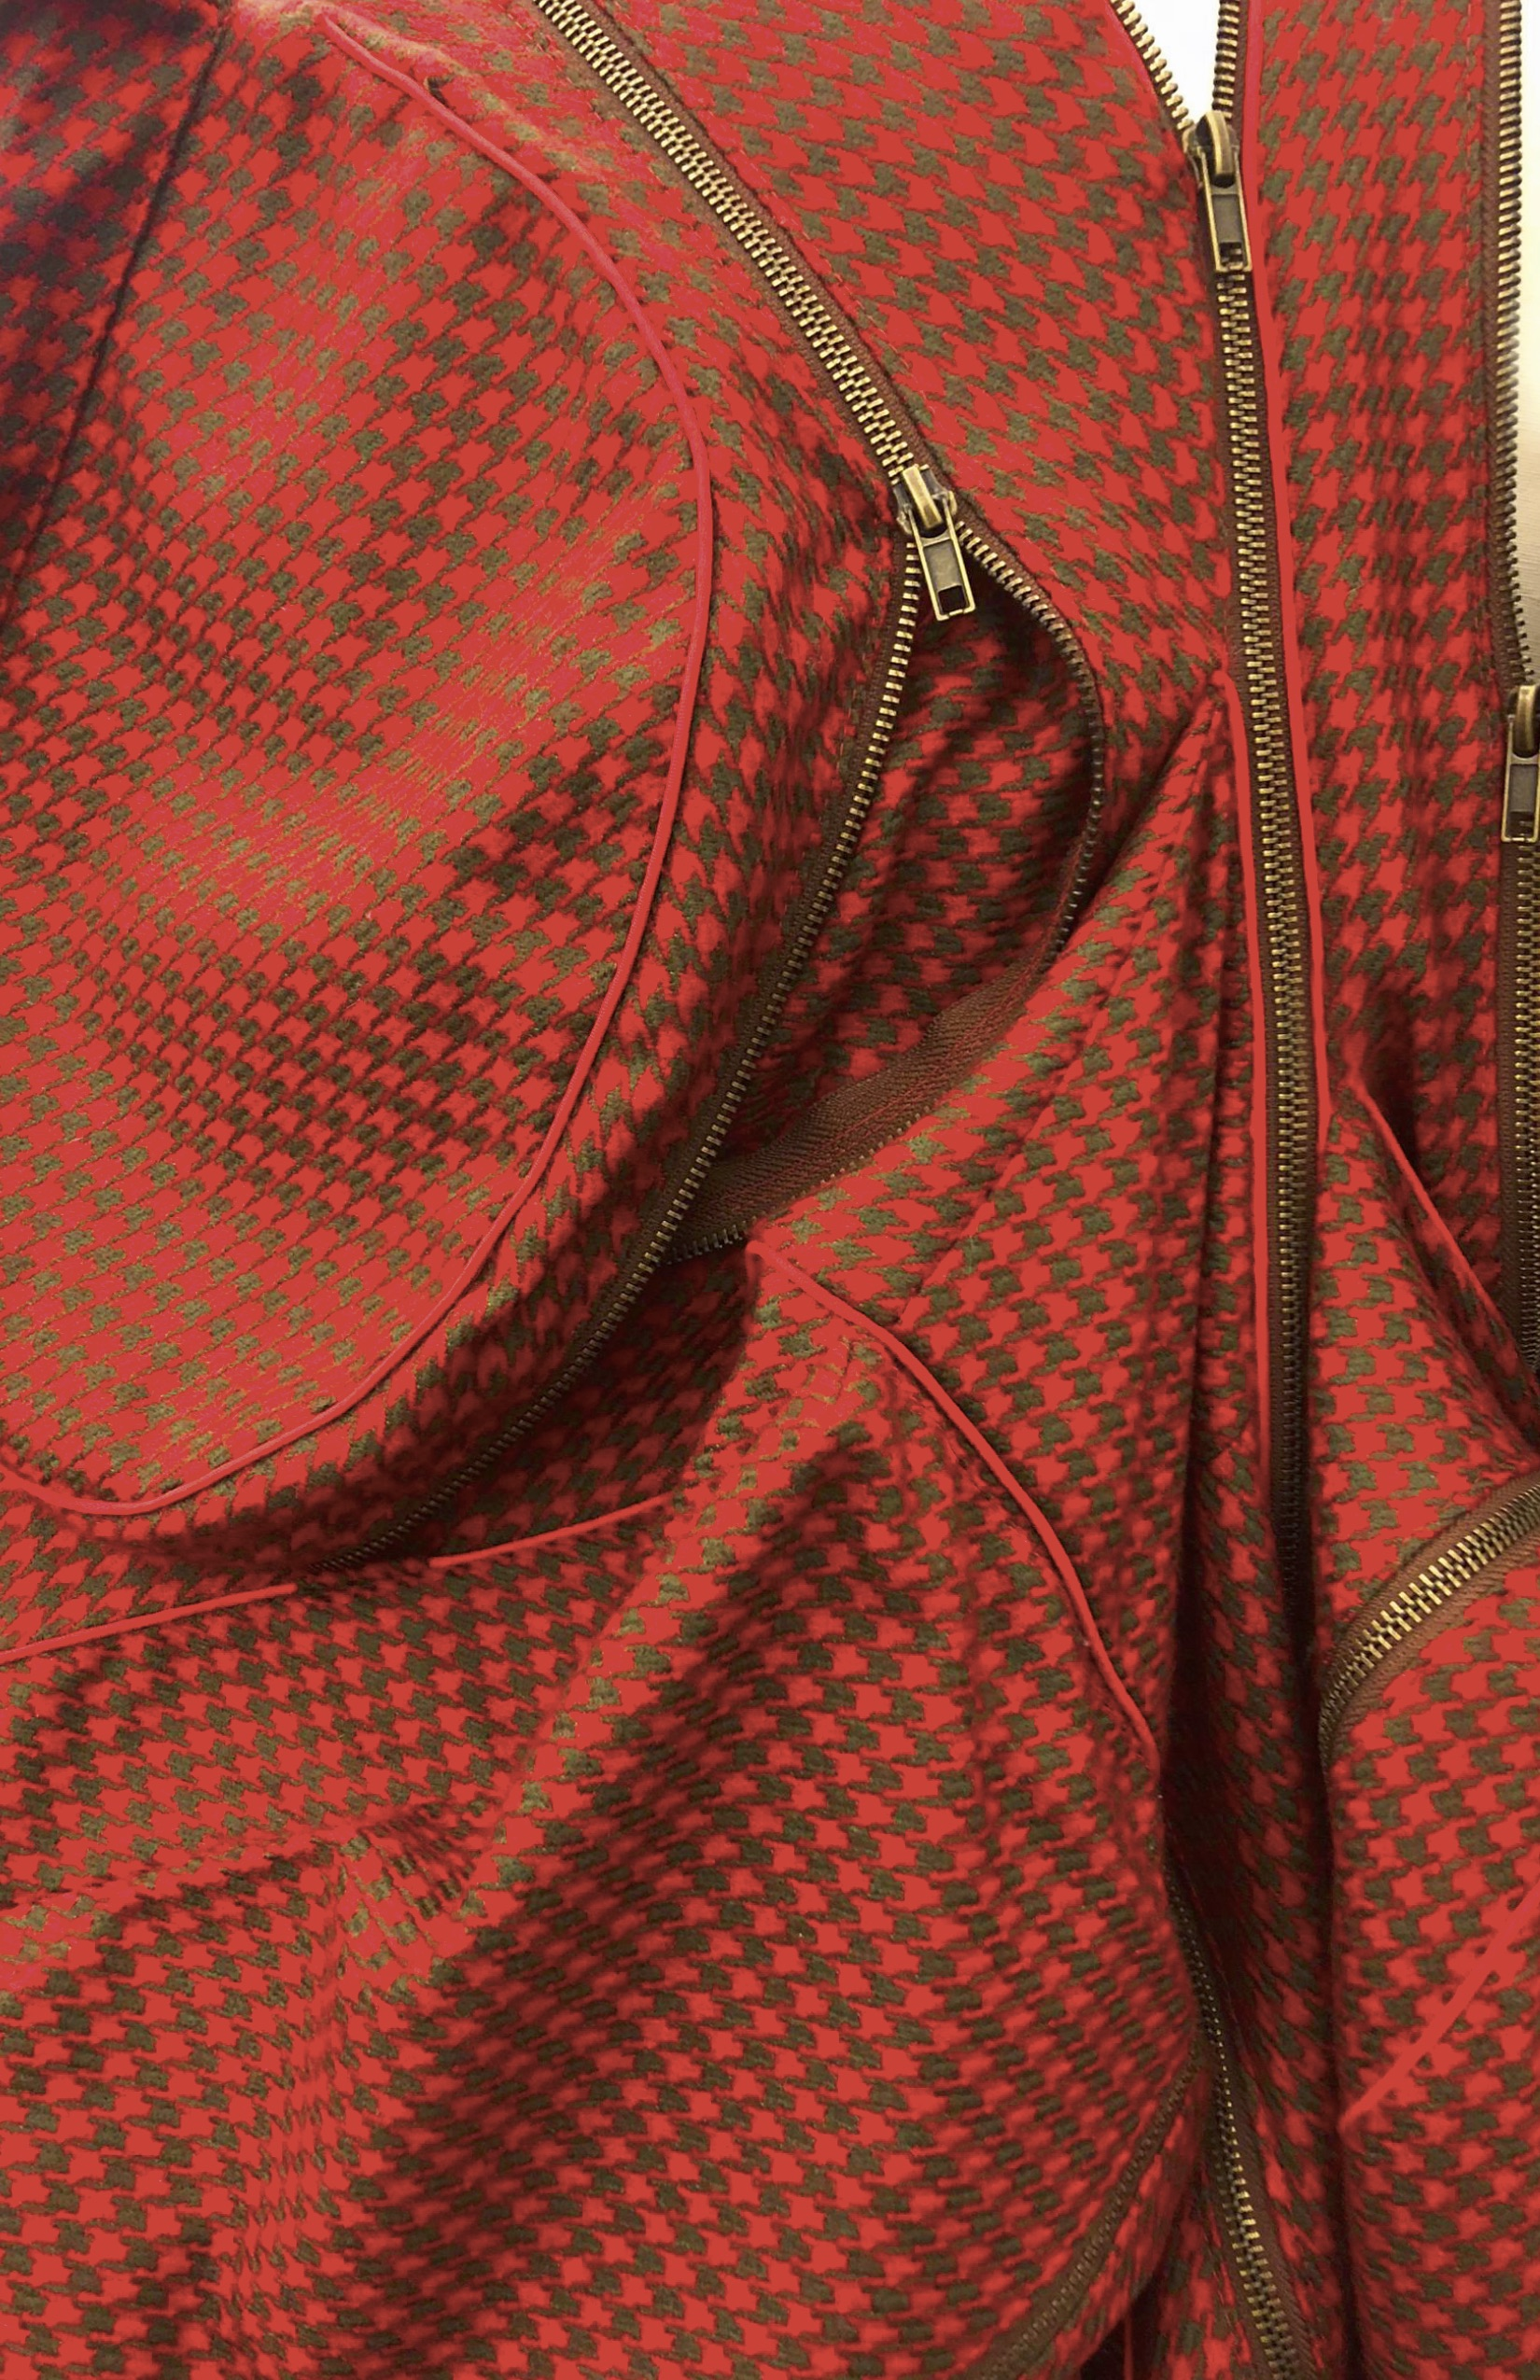 PACK IN THE DAY JACKET (detail)